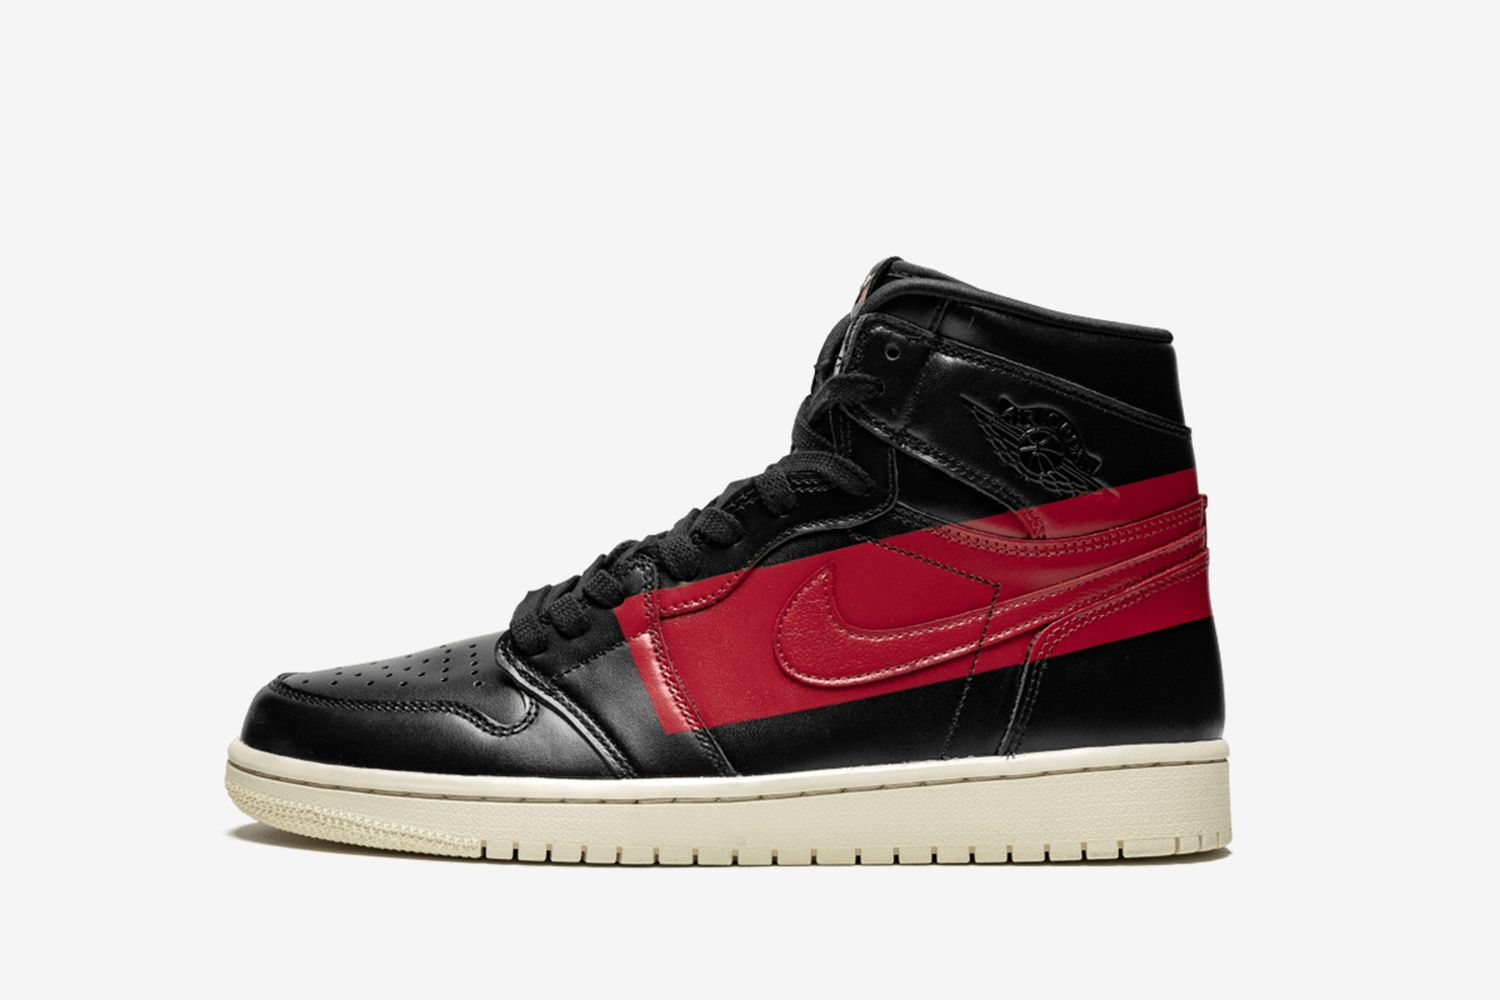 Air Jordan 1 High OG Defiant